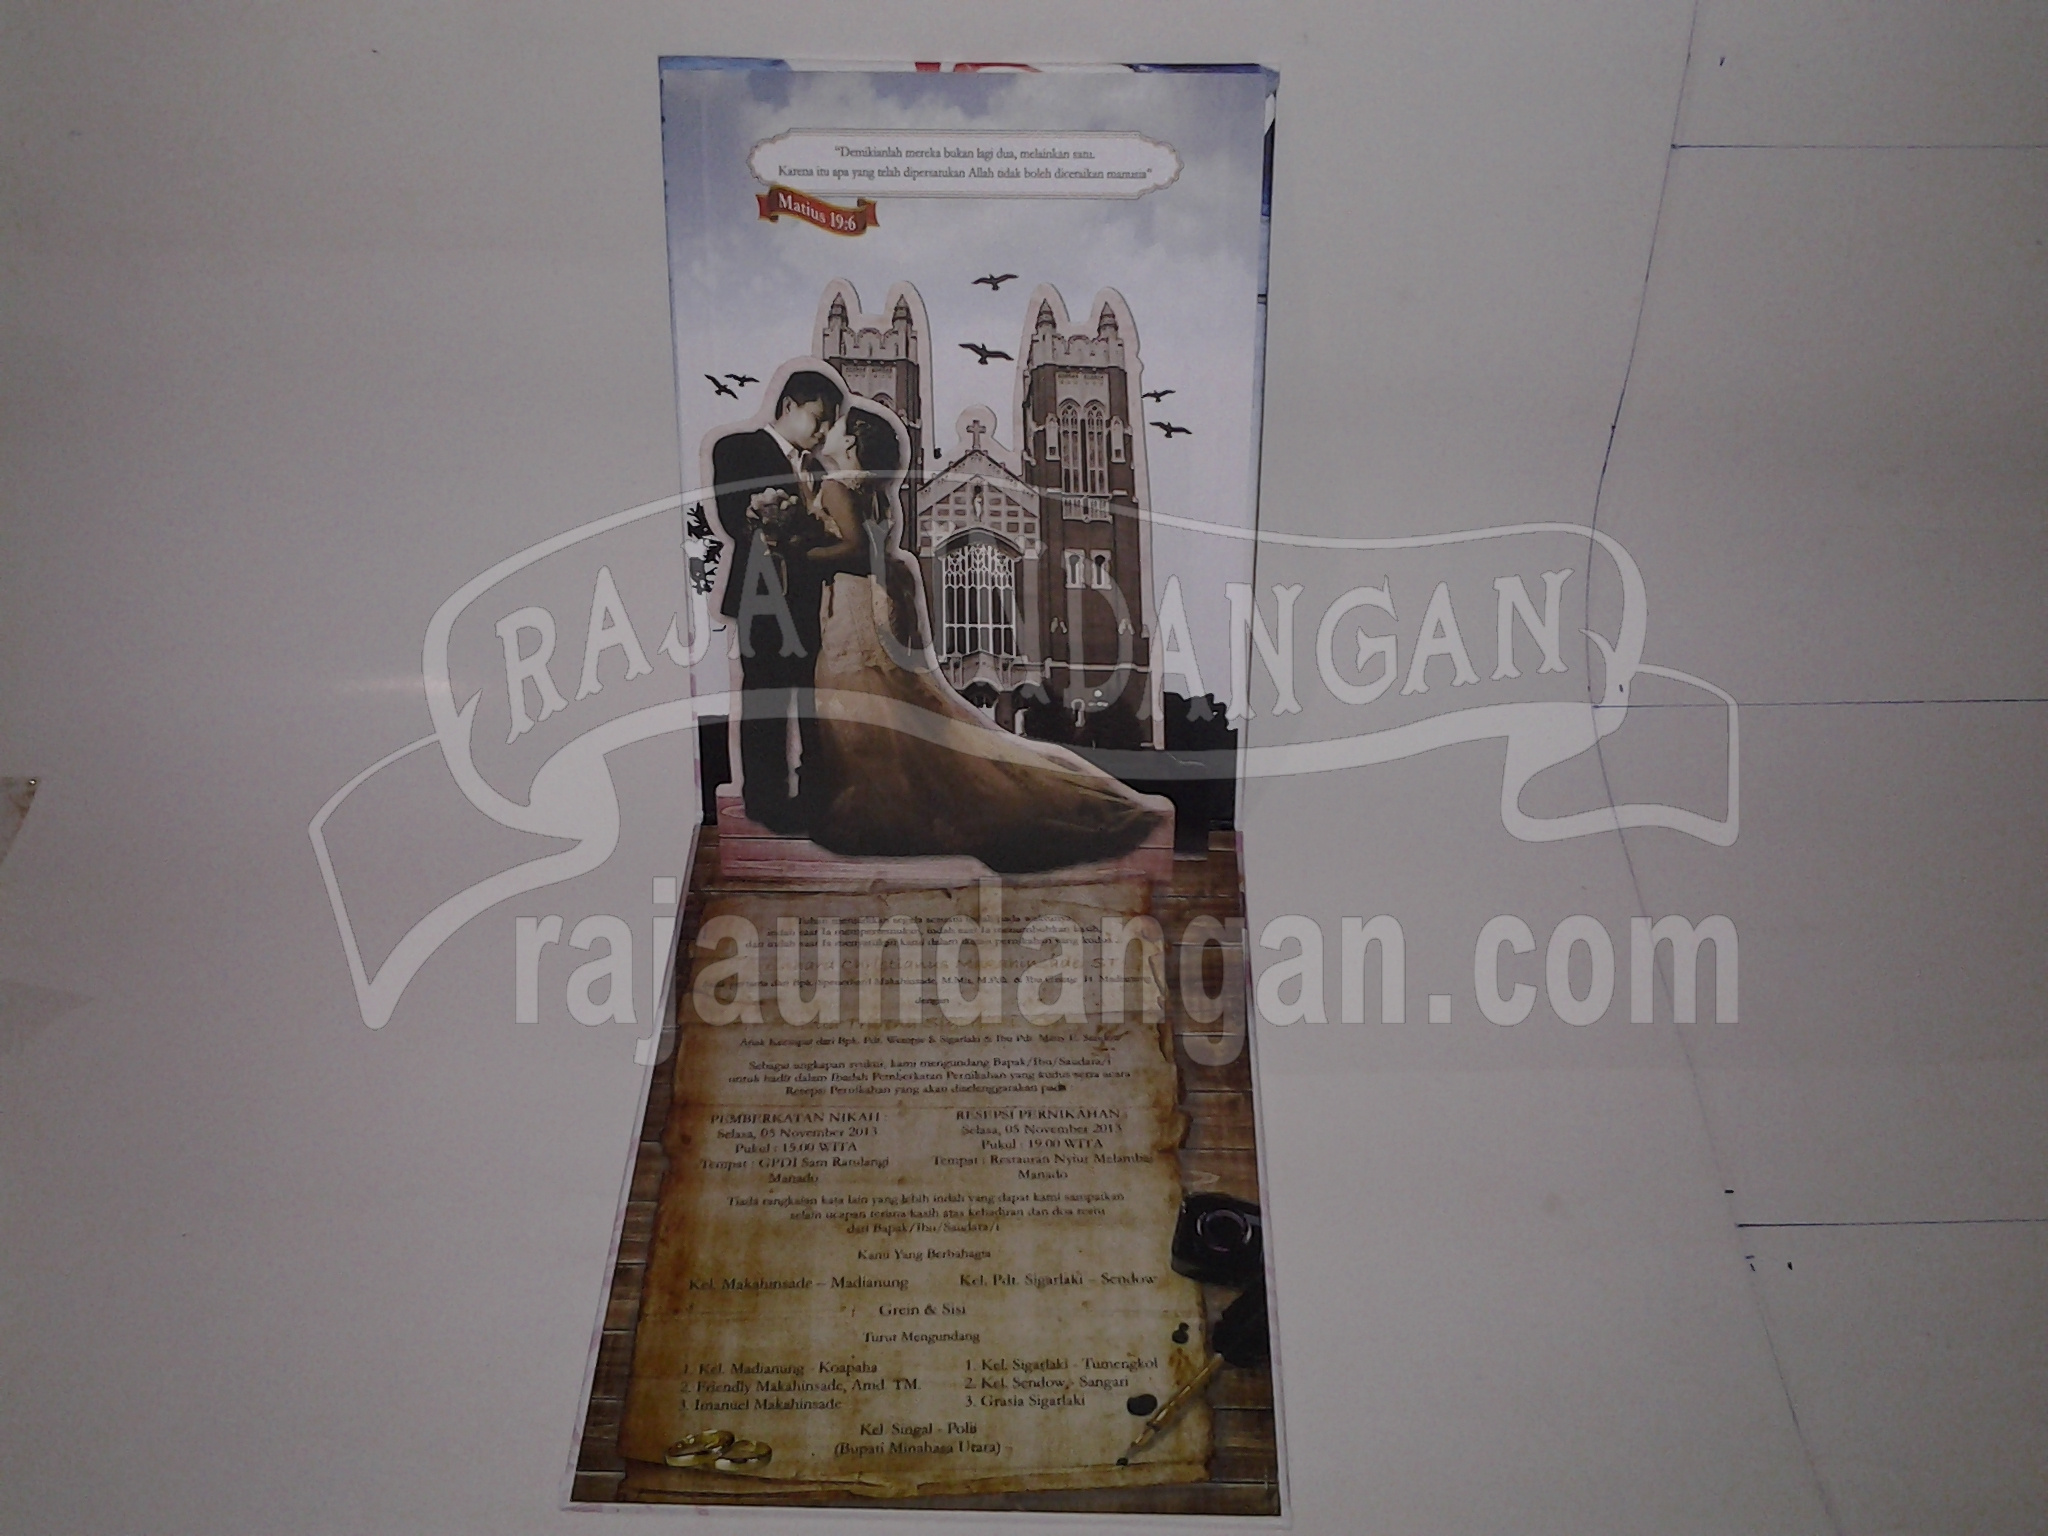 Undangan Pernikahan Hardcover Pop Up Grein dan Sisi 31 - Percetakan Wedding Invitations Eksklusif dan Elegan di Gunung Anyar